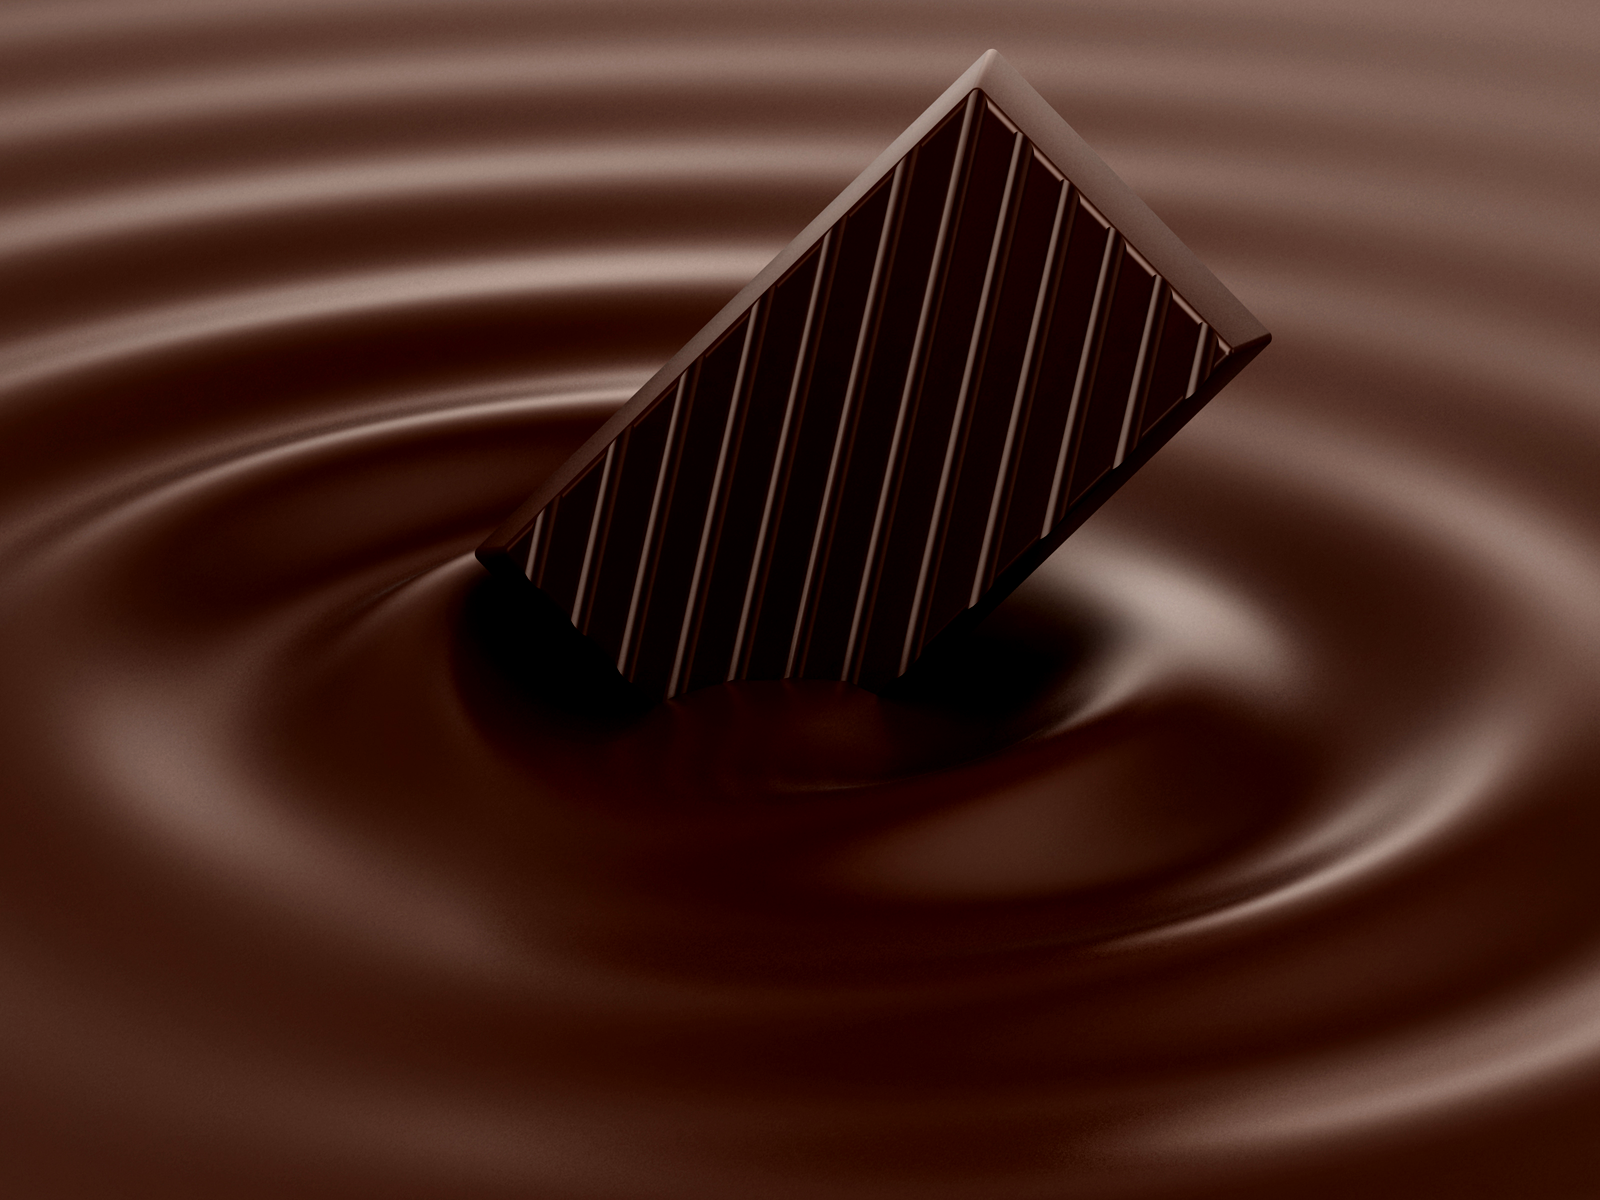 Adorable HDQ Backgrounds of Chocolate, 1600x1200